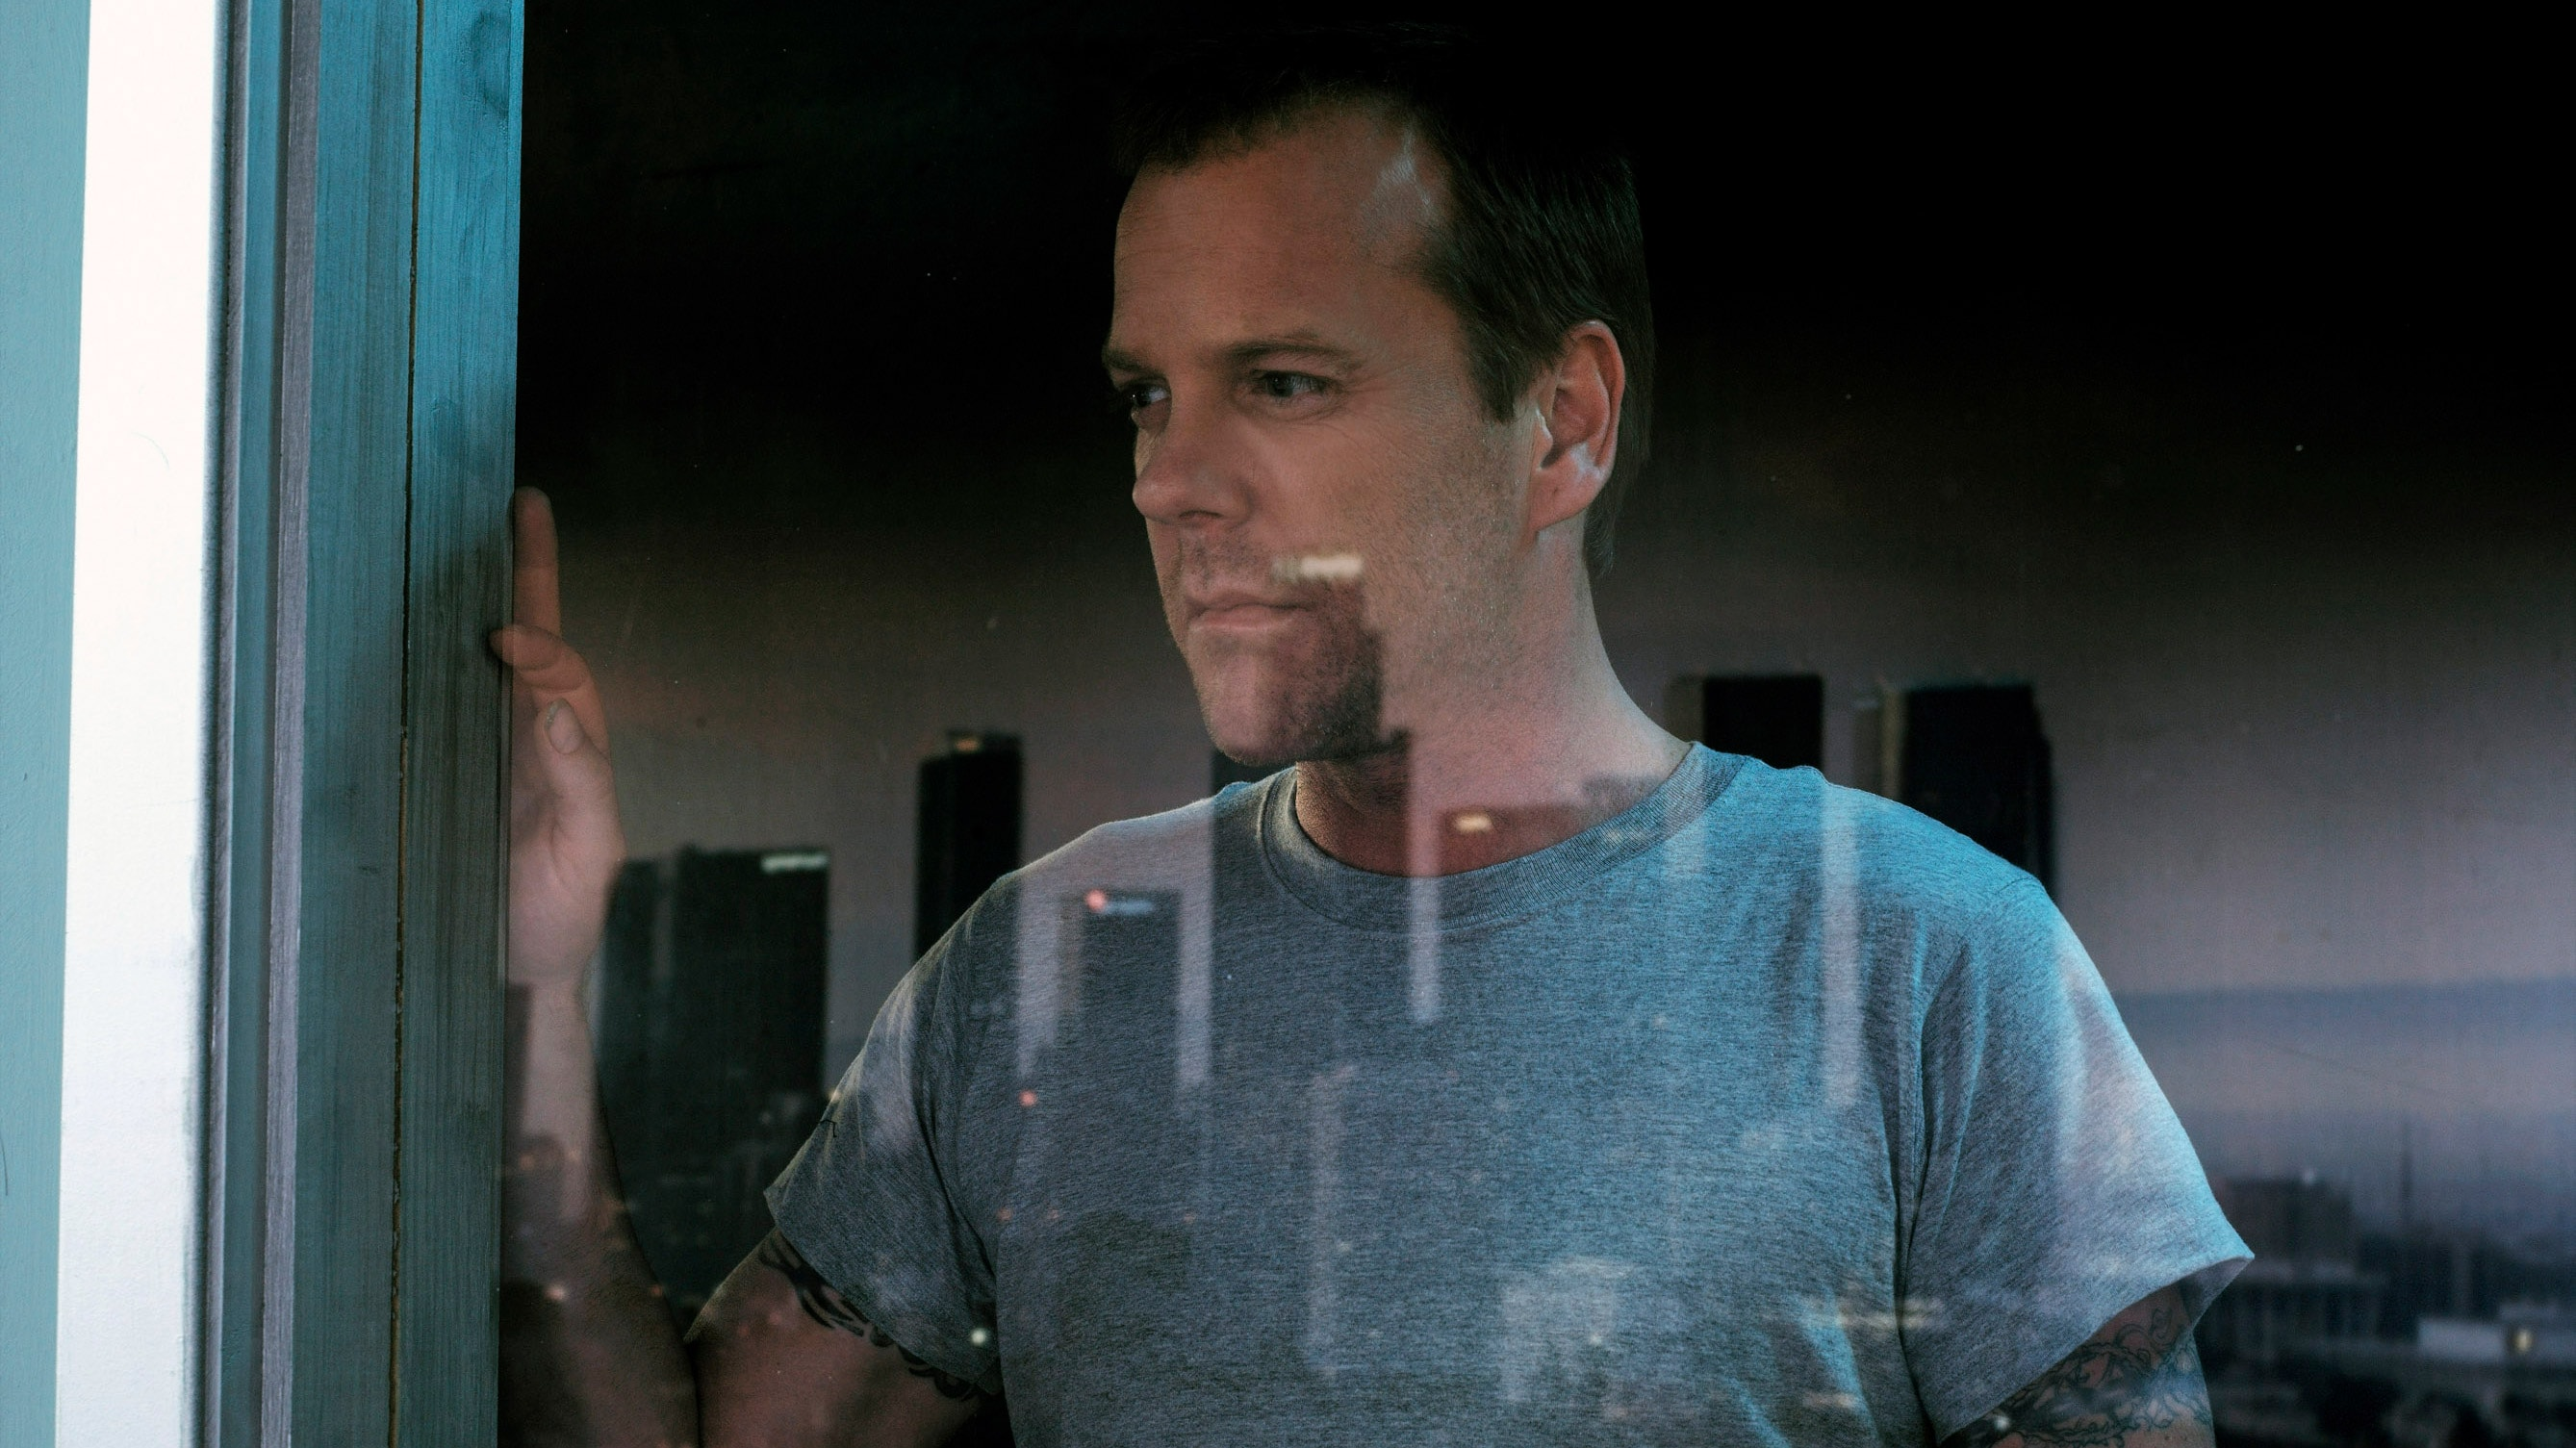 24 Season 5 - Jack Bauer Photoshoot